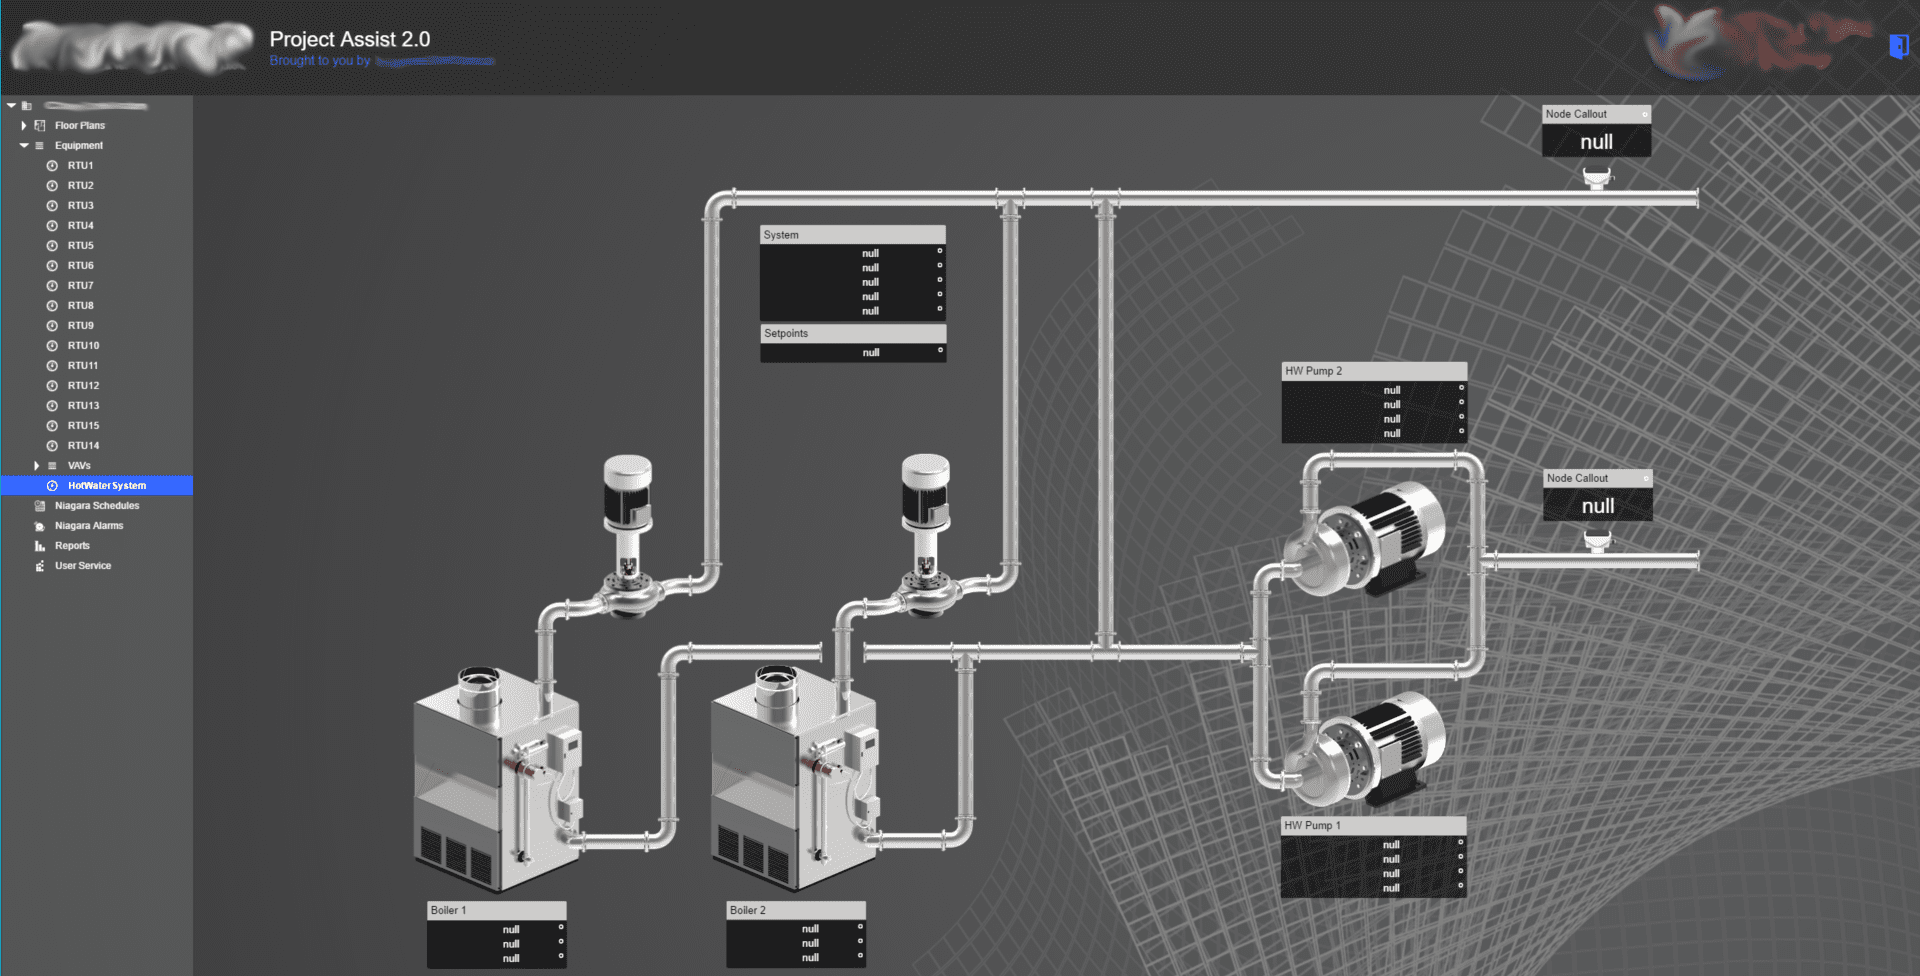 Hot water system on building controls software